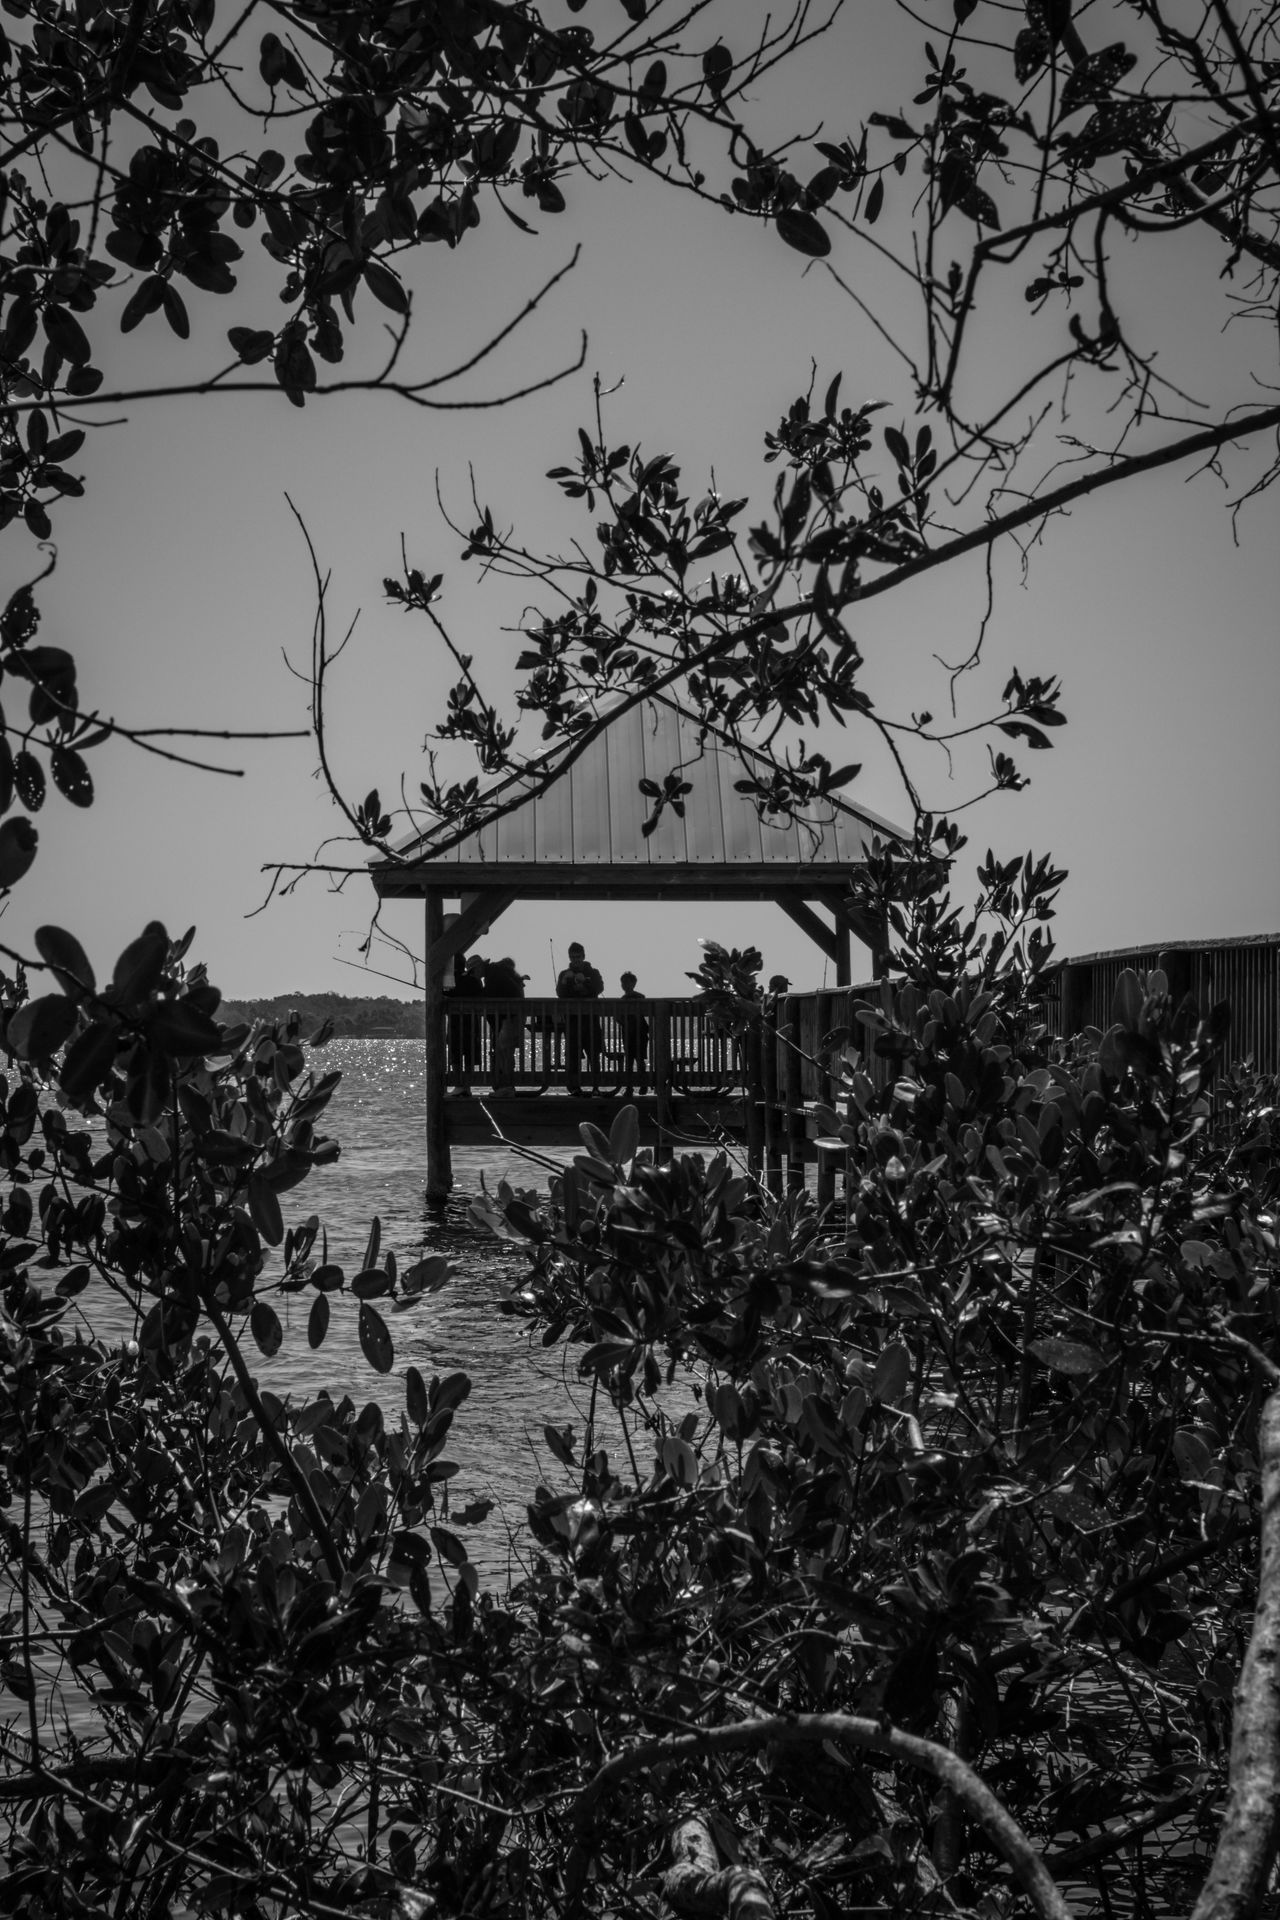 Fishing on the pier Blackandwhite Photography Fishing Fishing Time Indian River Indian River Lagoon Looking Through Pier Fishing Riverscape Trees Wooden Pier